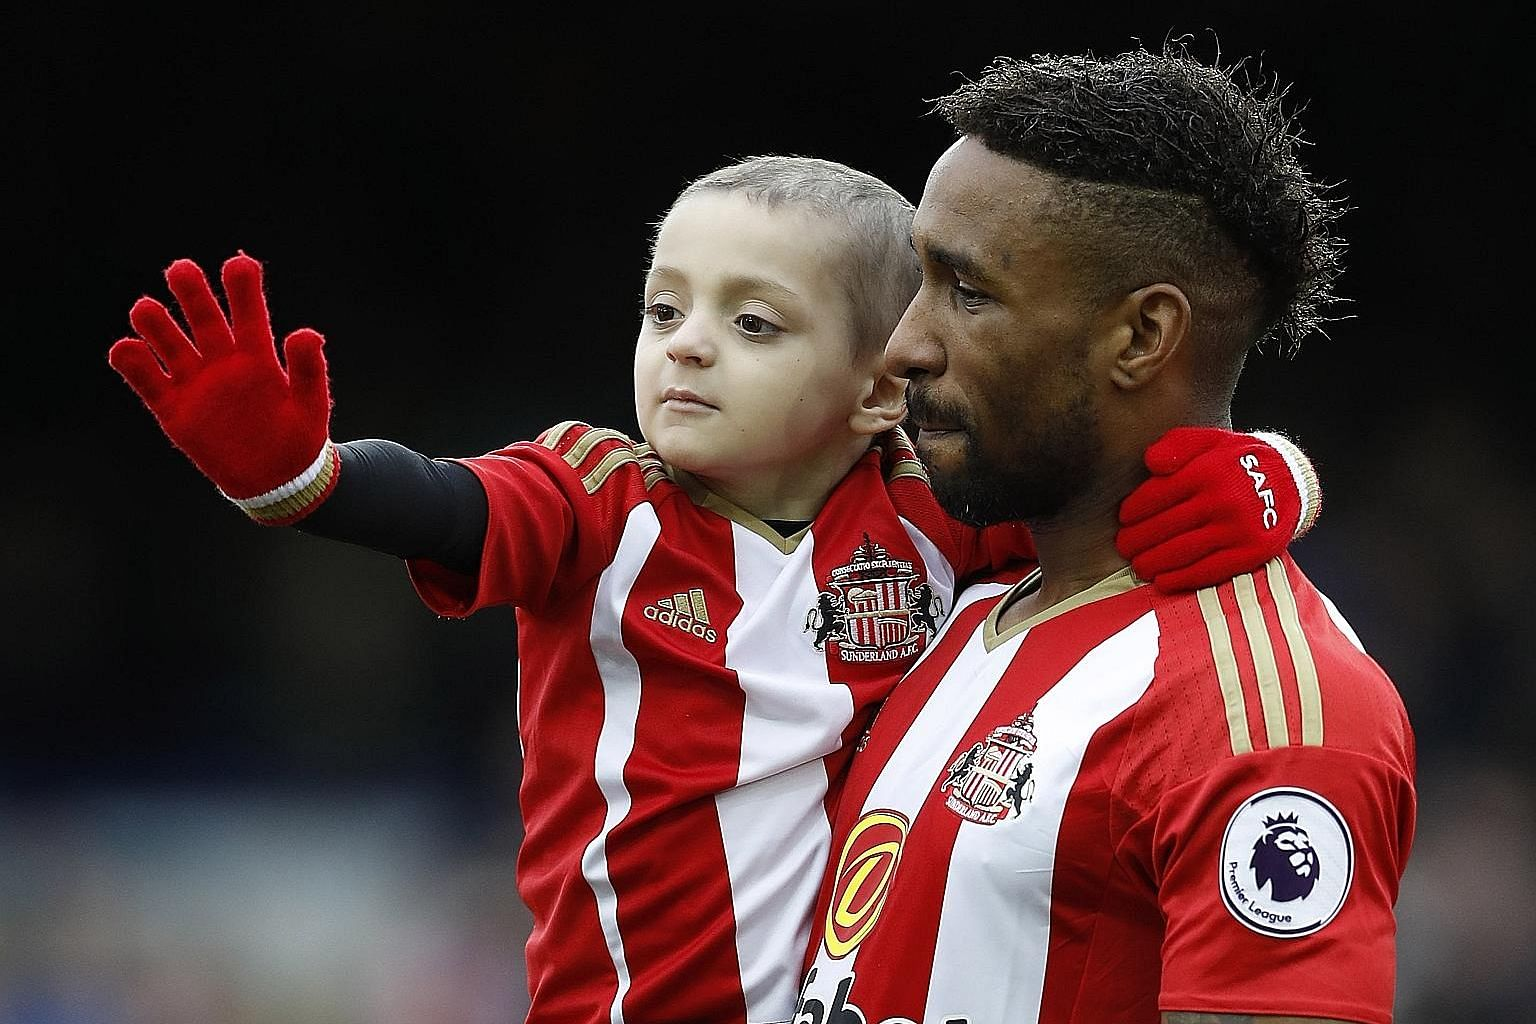 Sunderland's Jermain Defoe carrying out cancer-stricken fan Bradley Lowery before the match at Goodison Park. Everton and fans of all colours have contributed funds towards experimental treatment pioneered in the US which may cure or kill the five-ye